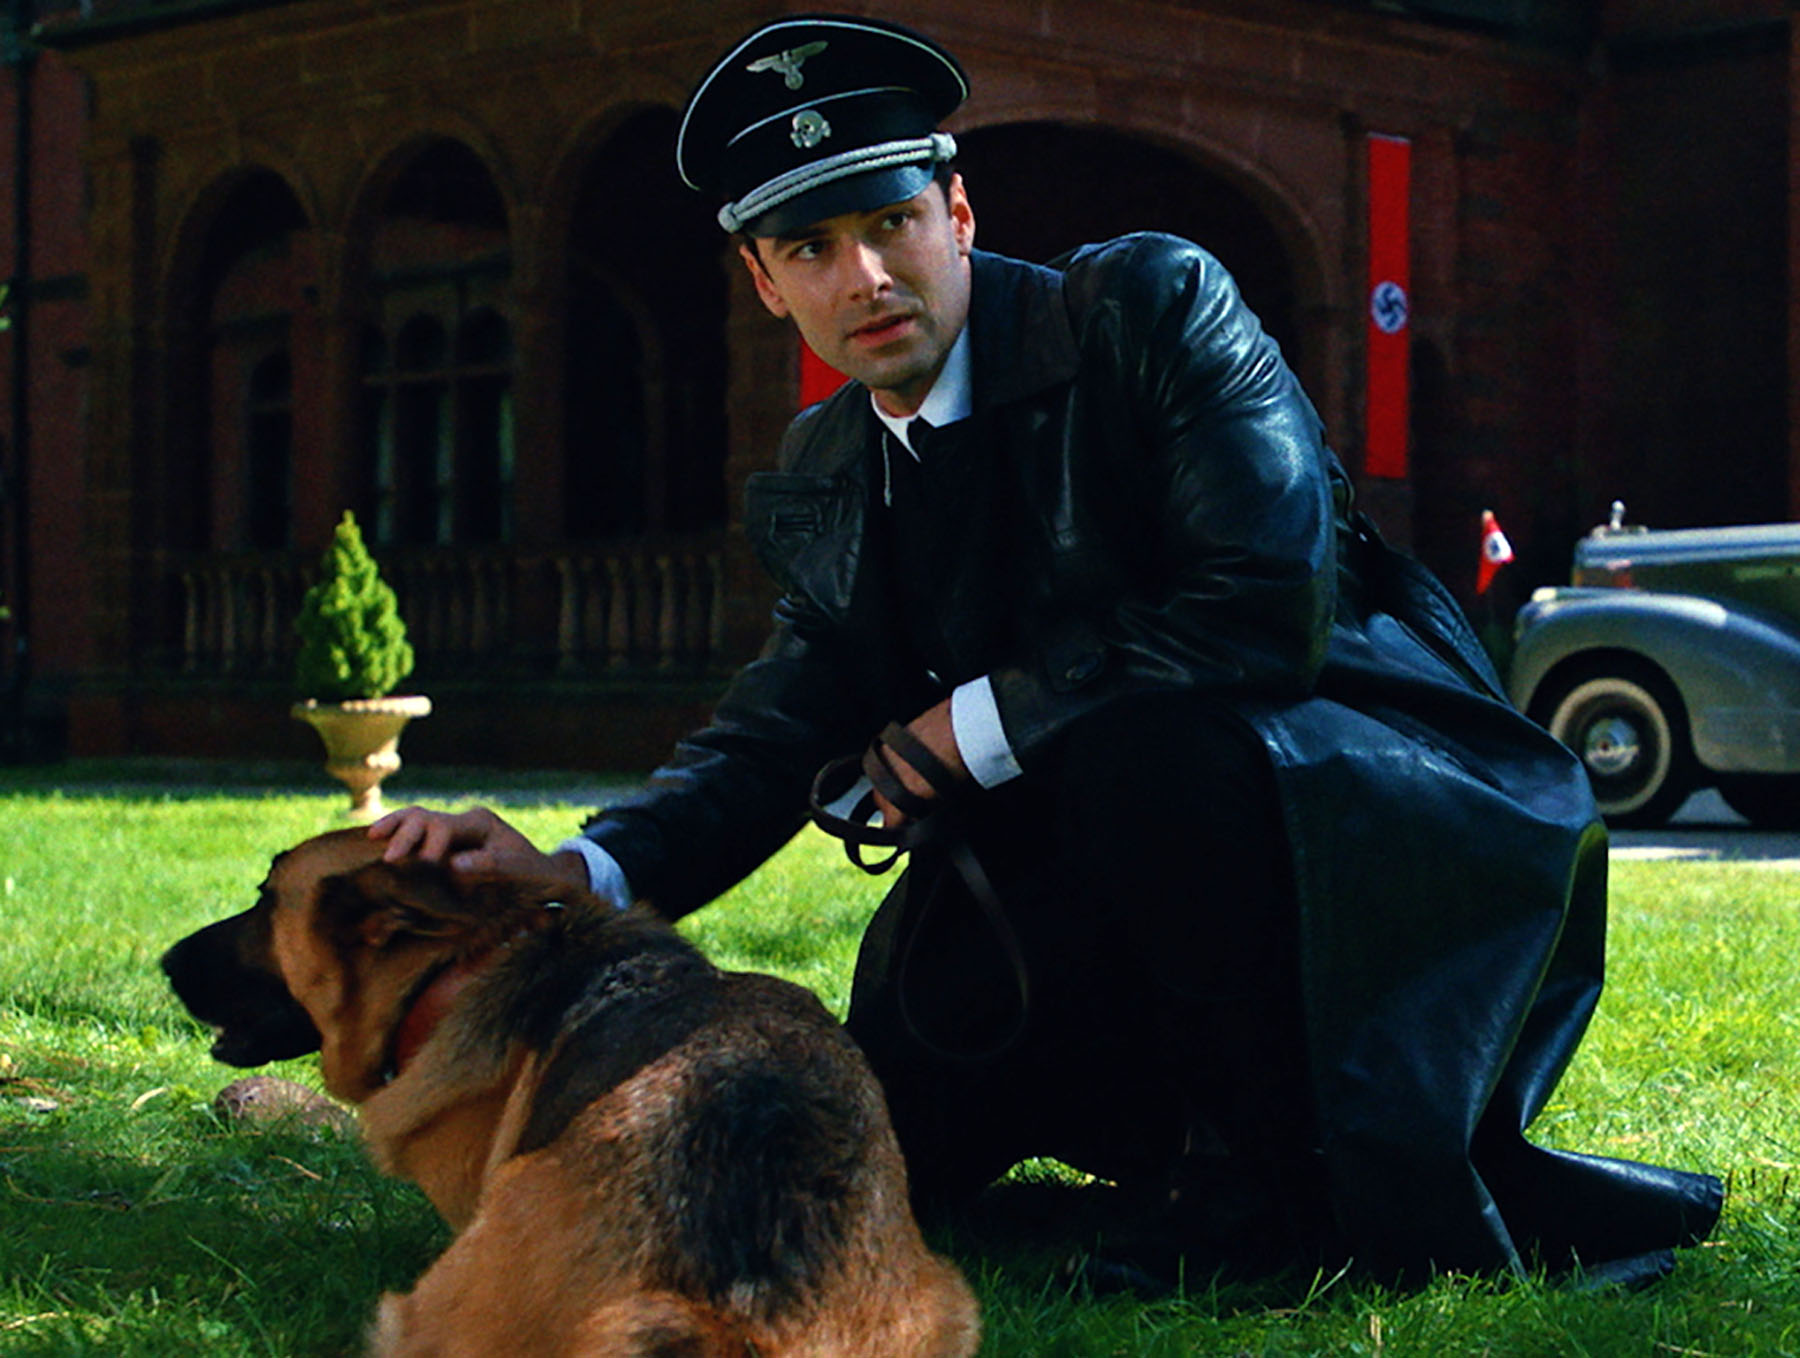 Aidan Turner as Calvin under cover as an SS officer in WWII in The Man Who Killed Hitler and Then The Bigfoot (2018)